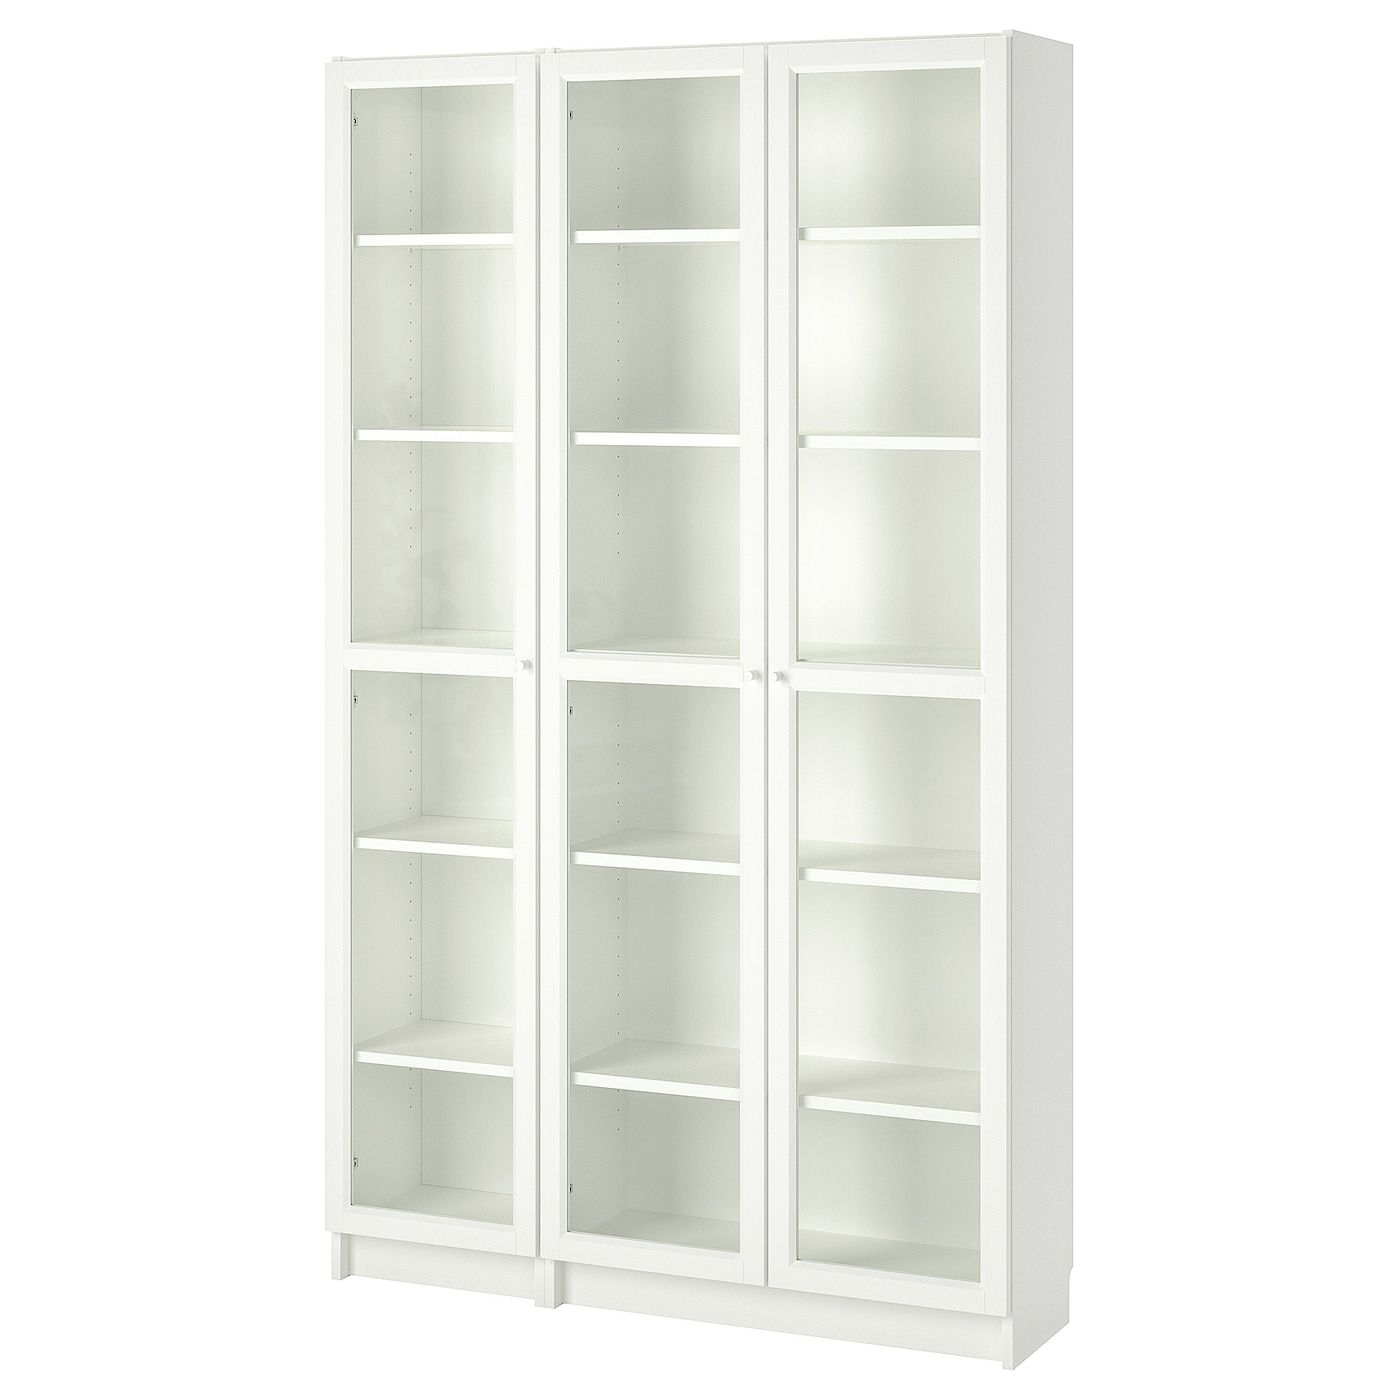 Billy Oxberg Bibliotheque Vitree Blanc 120x30x202 Cm Ikea In 2020 Glass Bookcase Bookcase With Glass Doors Glass Cabinet Doors